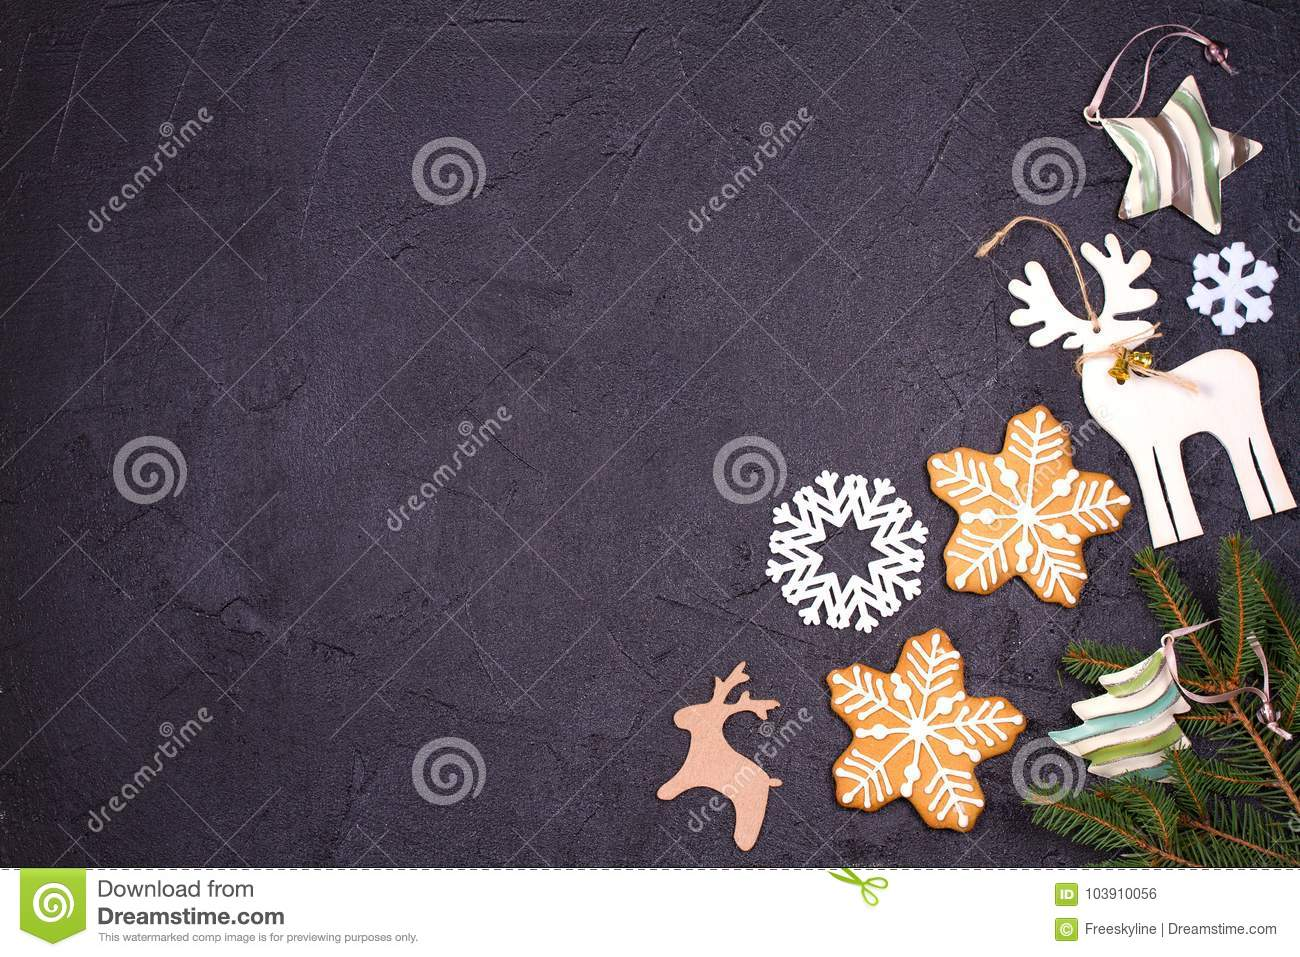 christmas and new year border or frame on black background winter holidays concept view from above top studio shot horizontal